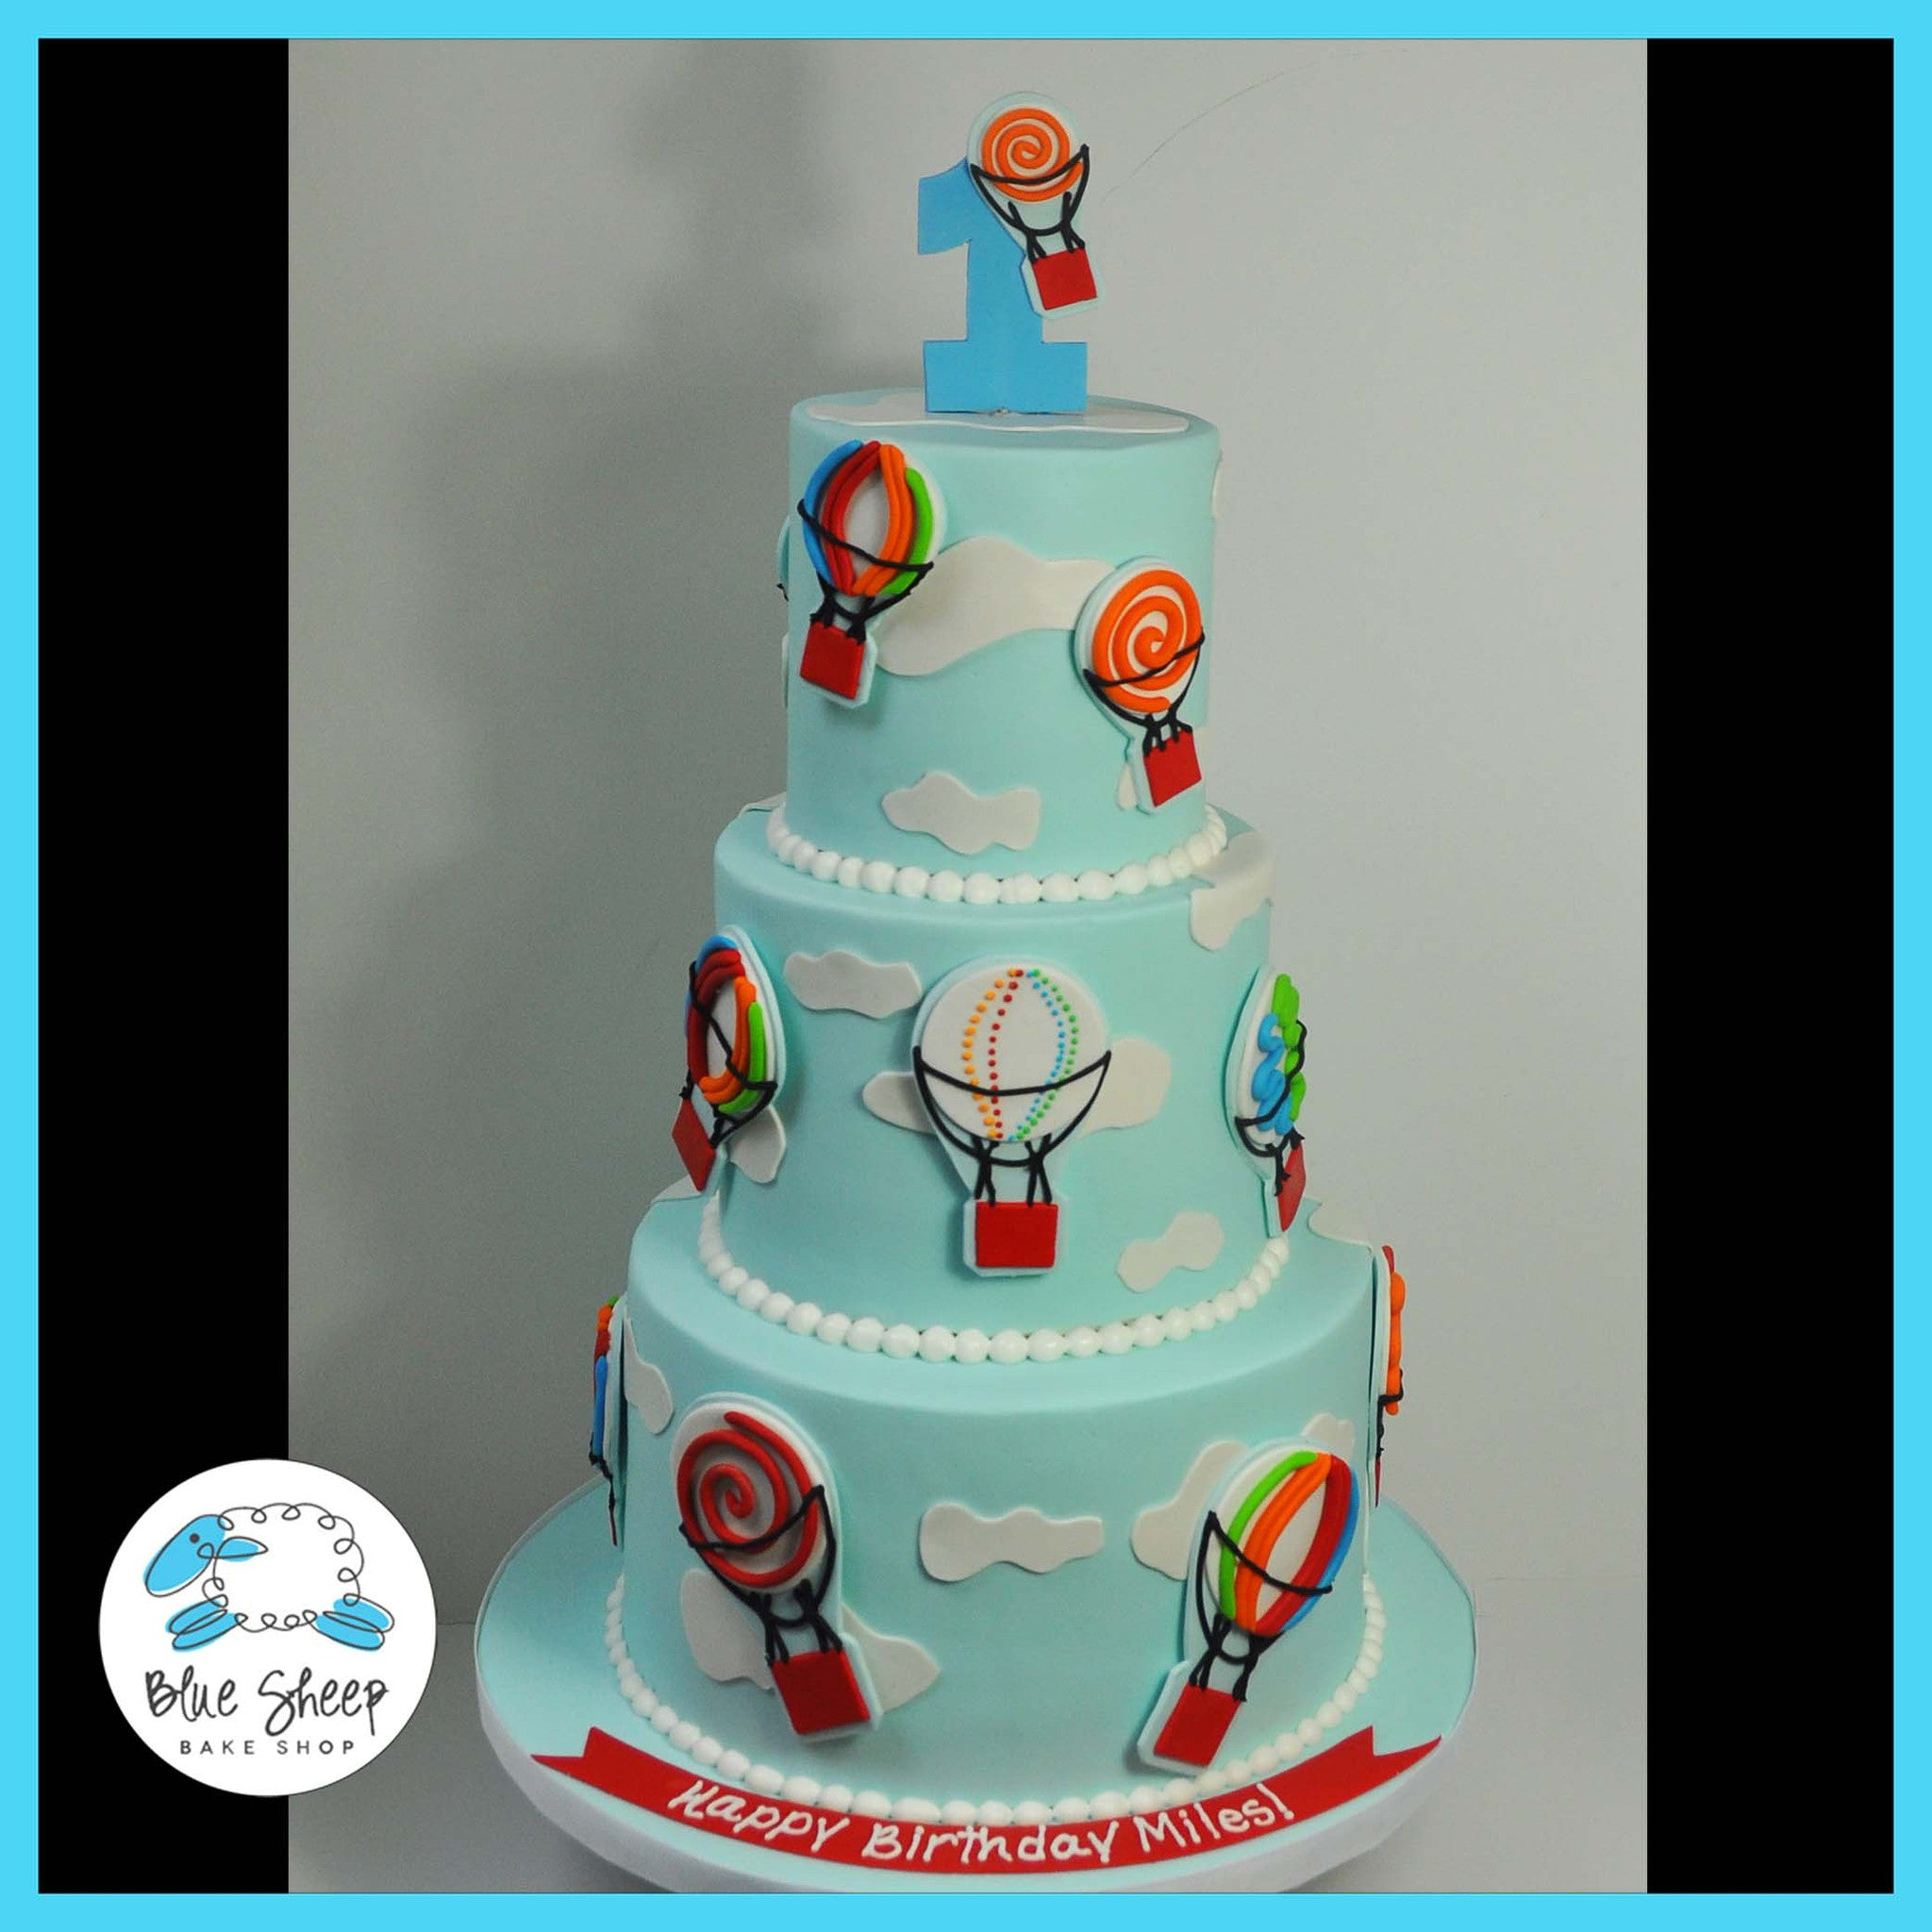 1st Birthday Hot Air Balloon Cake Blue Sheep Bake Shop